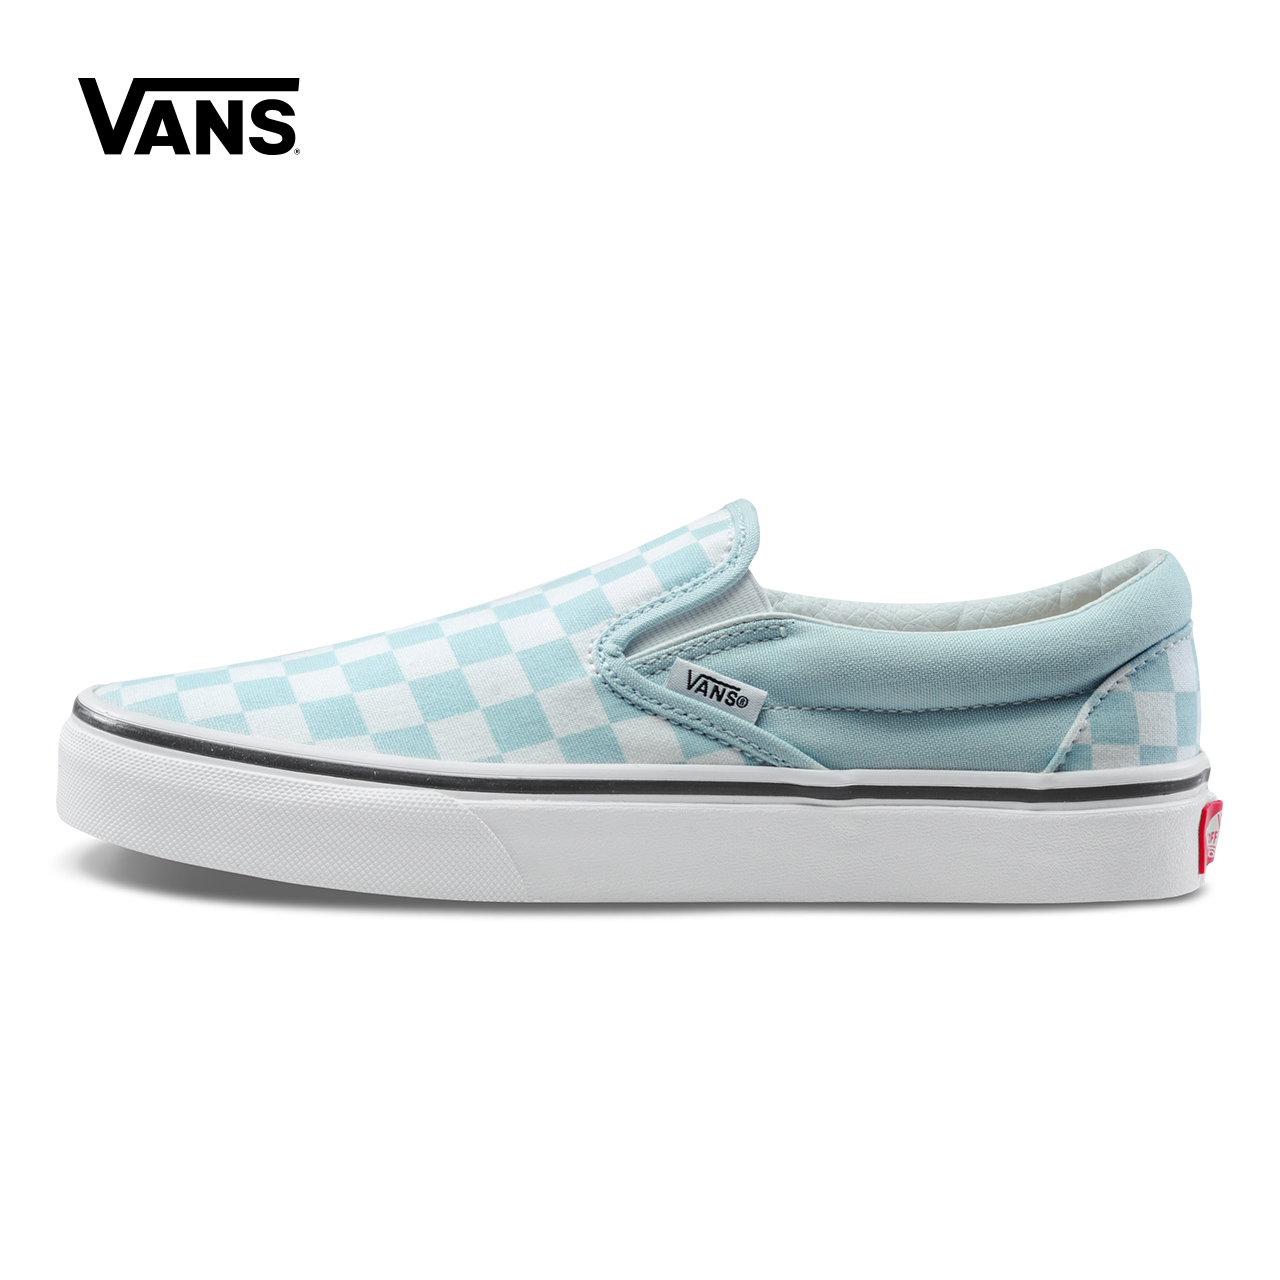 Original New Arrival Vans Women's Classic Slip-On Low-top Skateboarding Shoes Sneakers Canvas Comfortable VN0A38F7QCK/QCL suede low top slip on sneakers